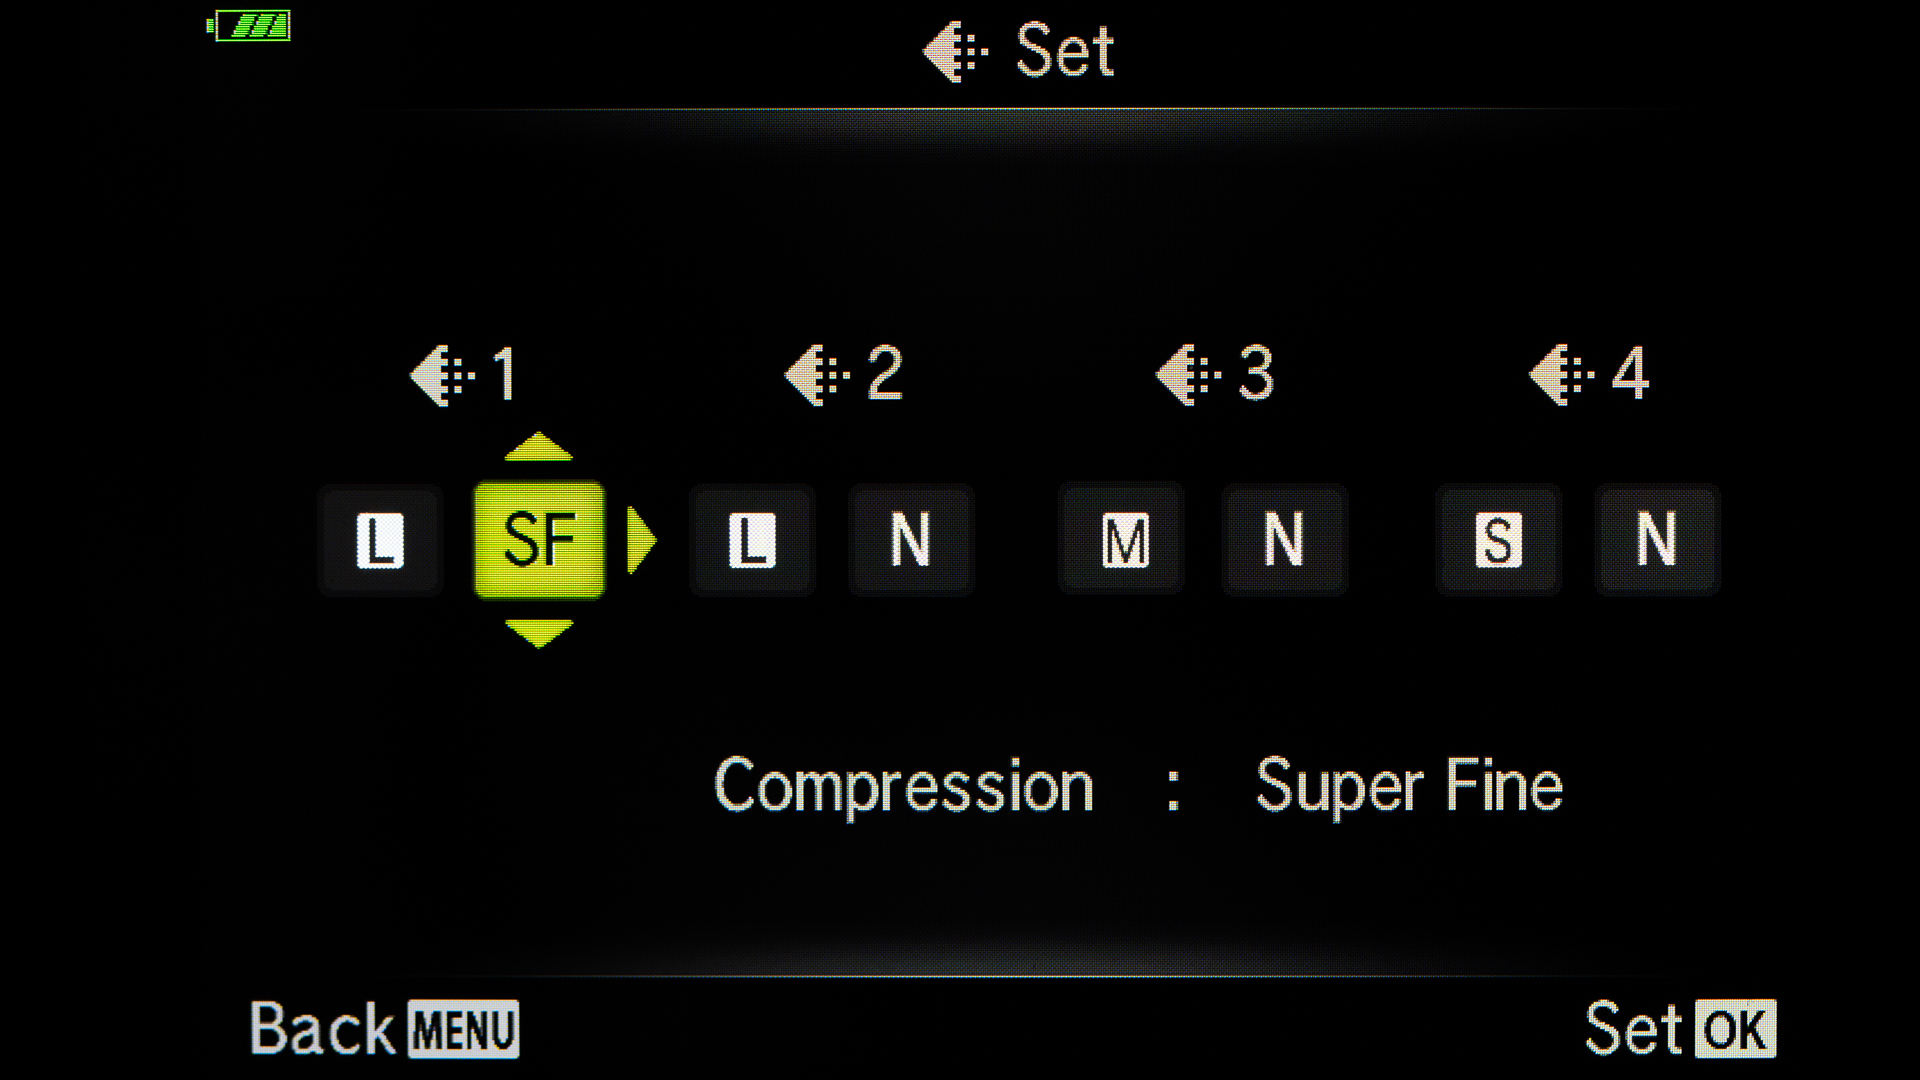 Choose Super Fine as your compression.